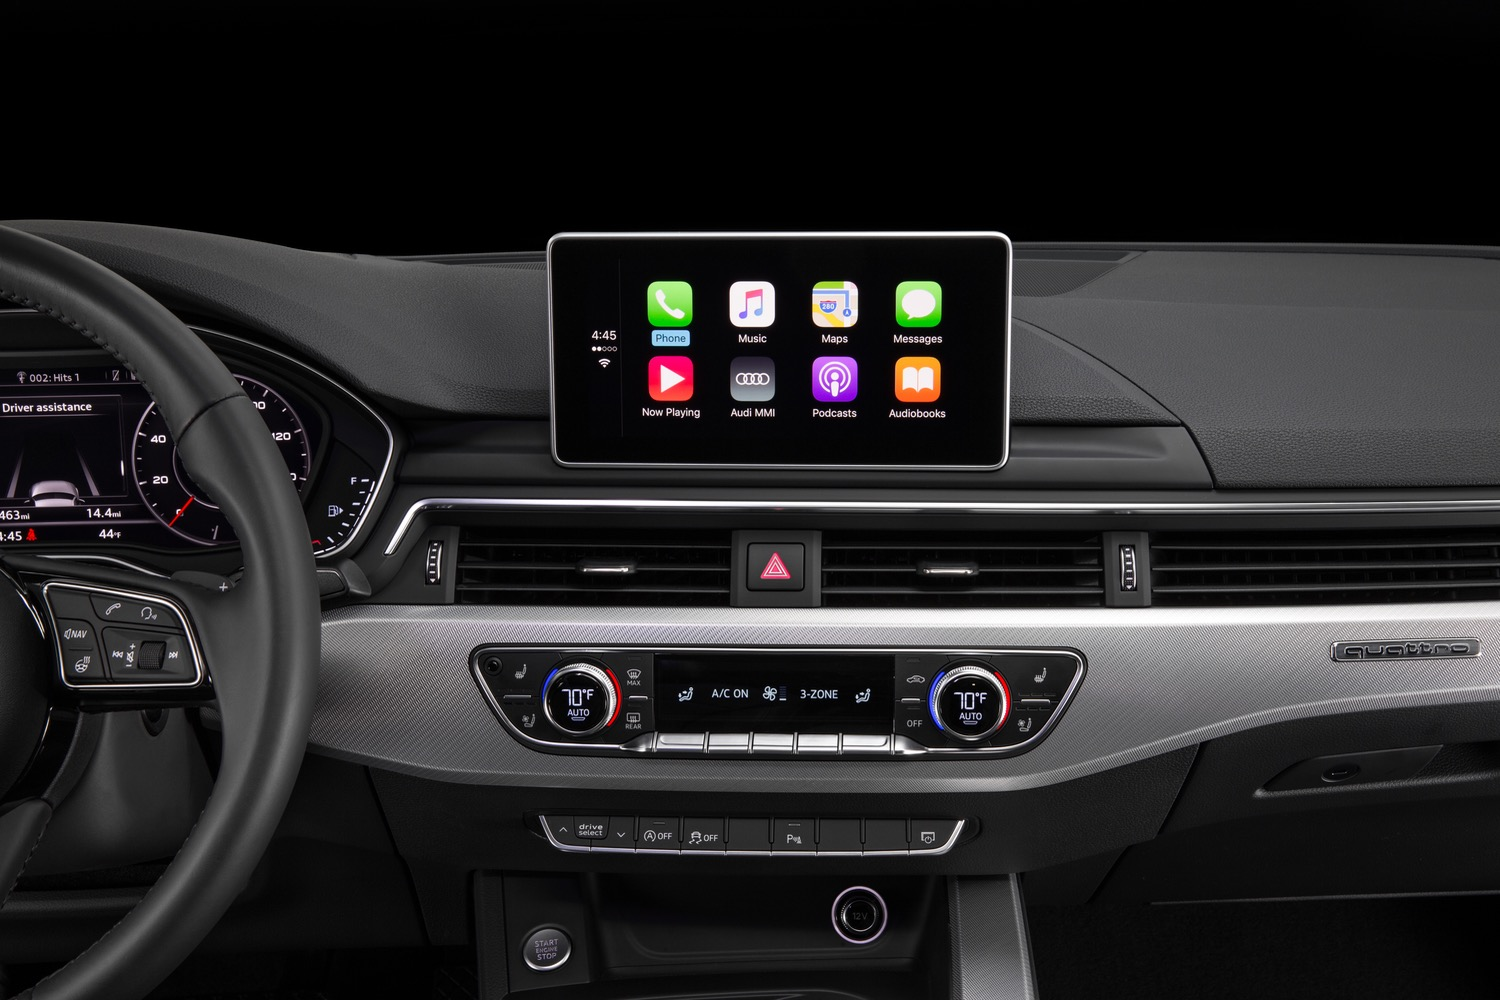 The Best Infotainment System You Can Buy | Audi, Tesla ...